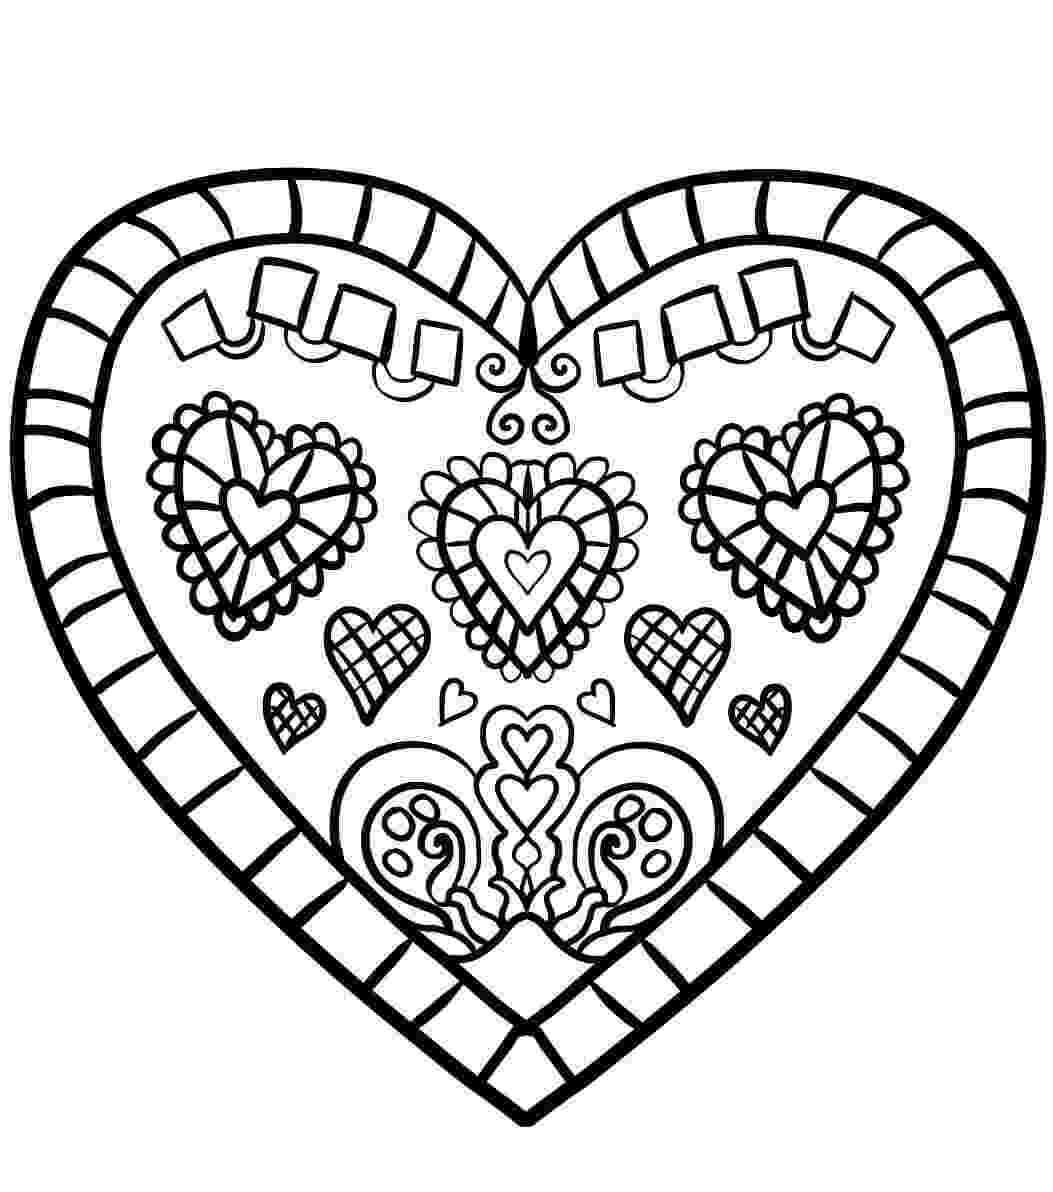 heart printable coloring pages free printable heart coloring pages for kids cool2bkids printable coloring pages heart